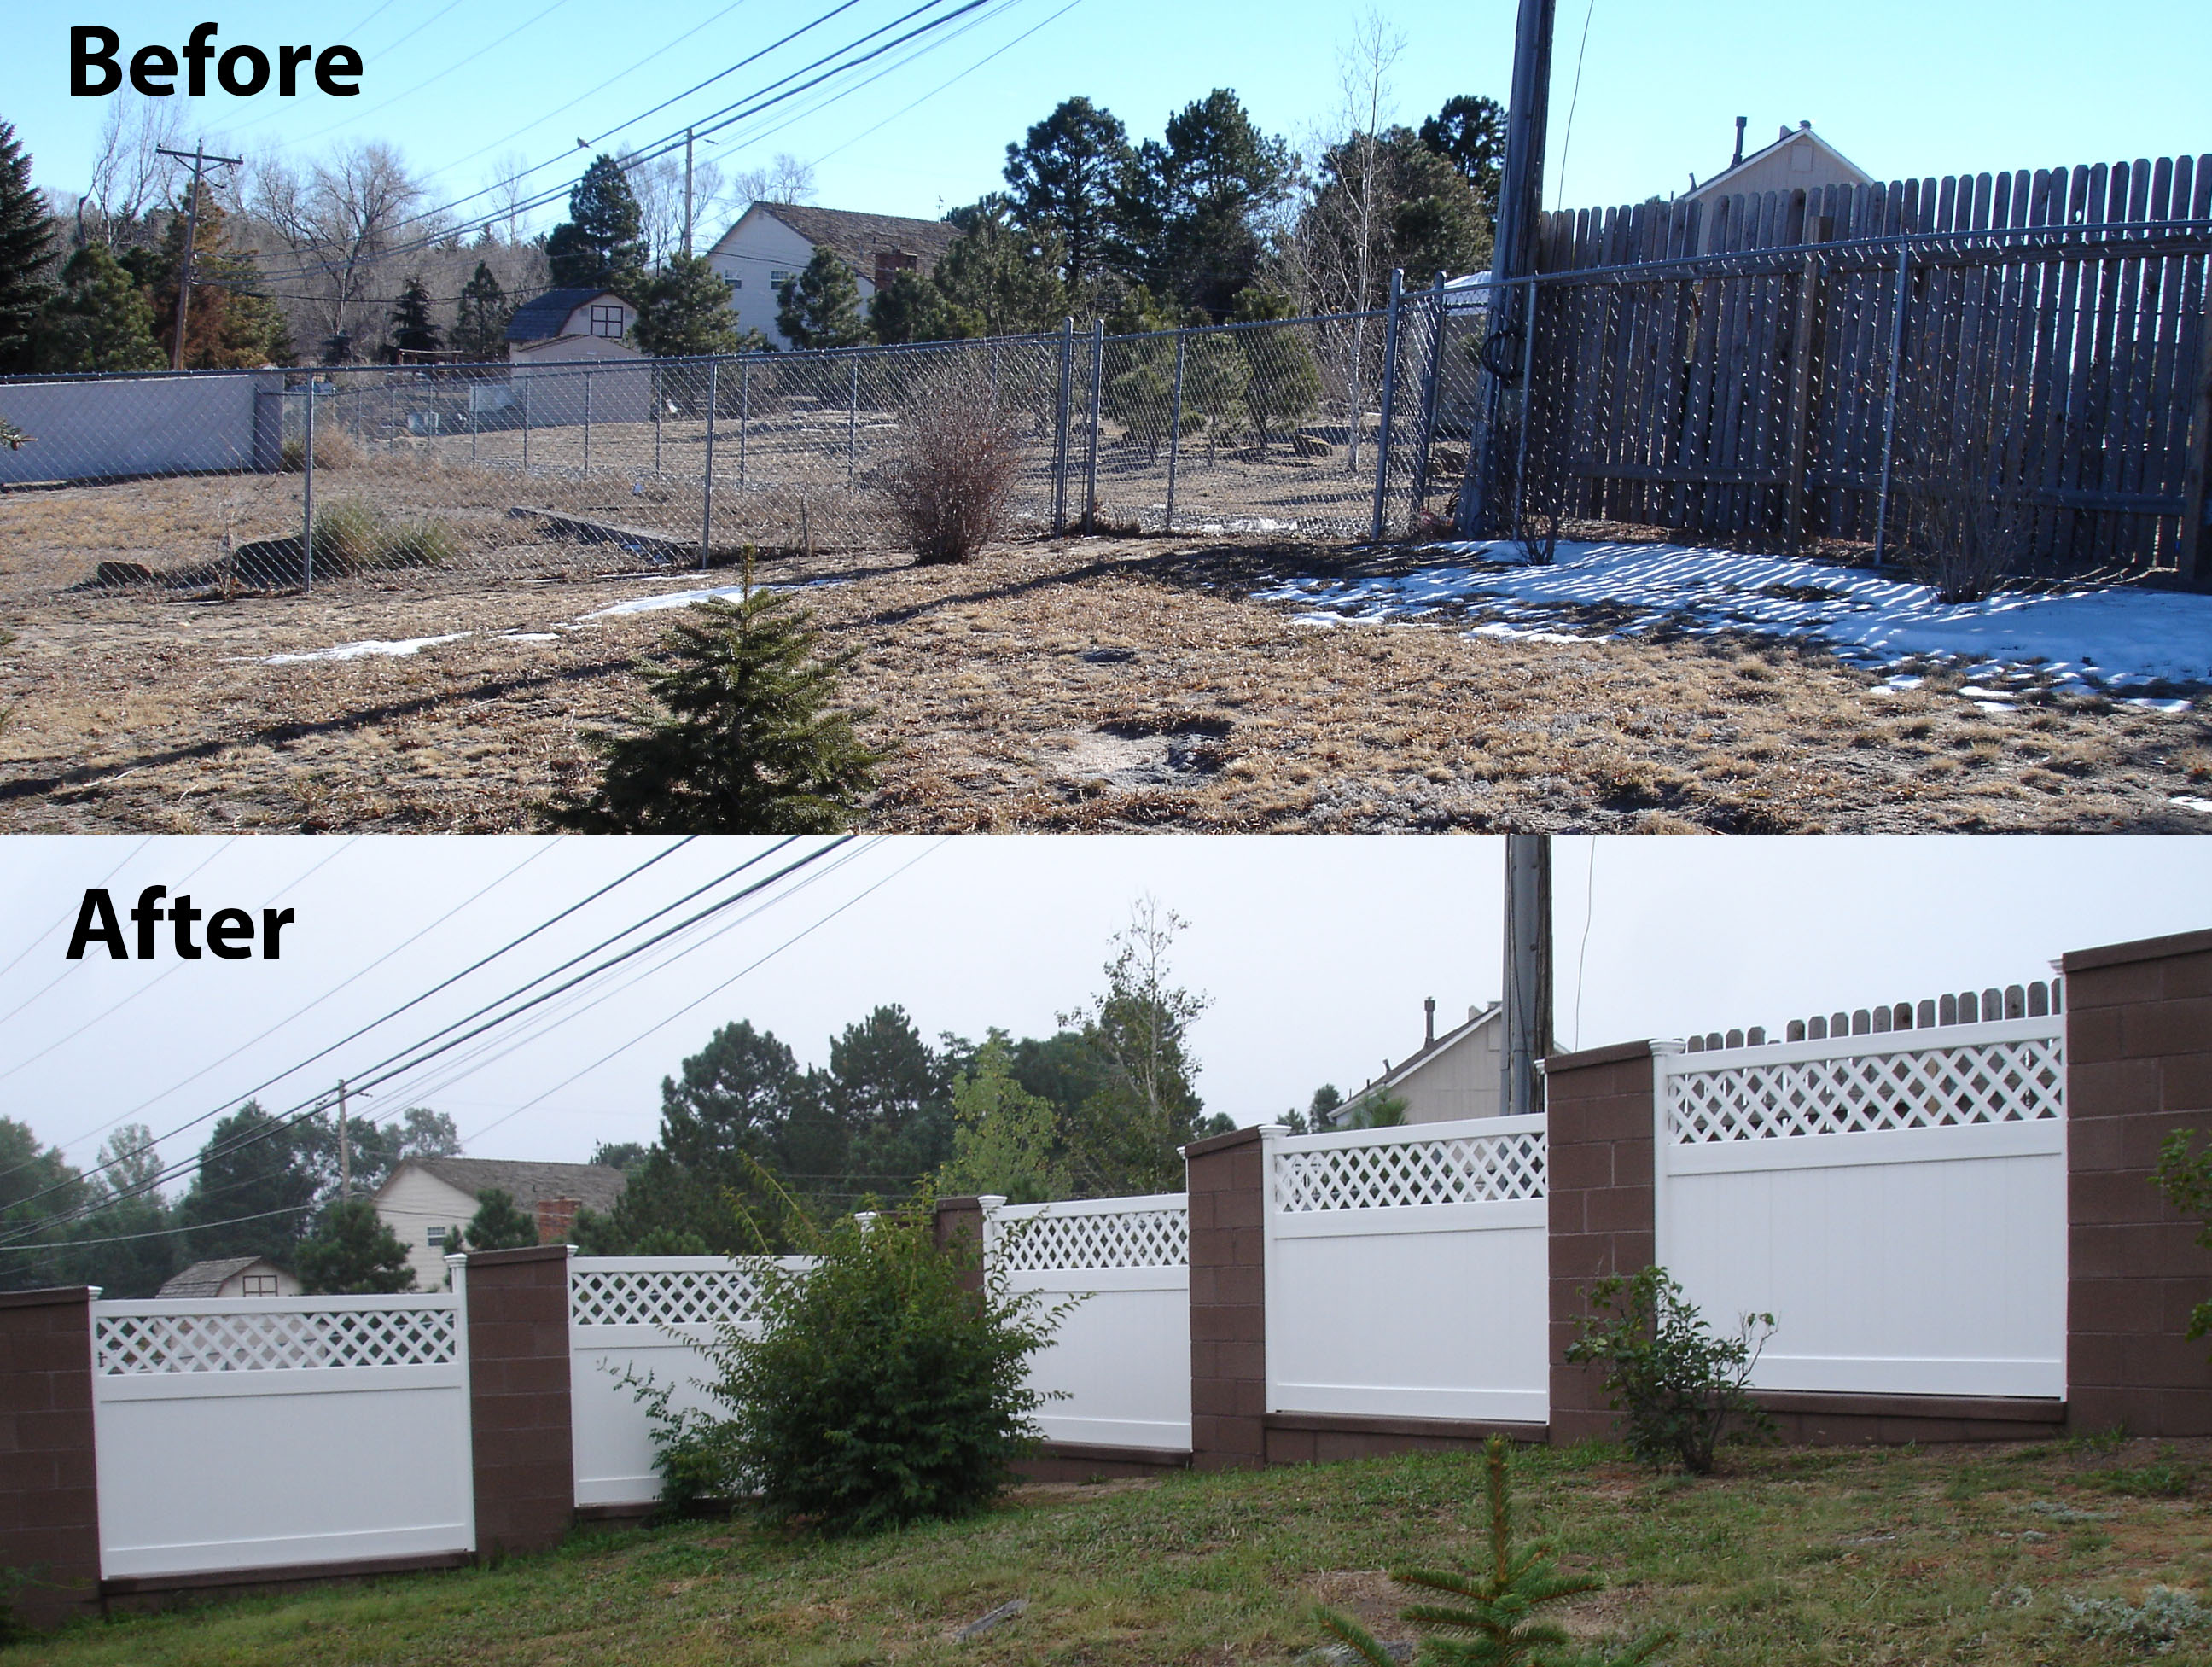 Jim in Colorado created a striking difference in his yard with the vinyl lattice top privacy fence beautifully positioned between brick pillars.